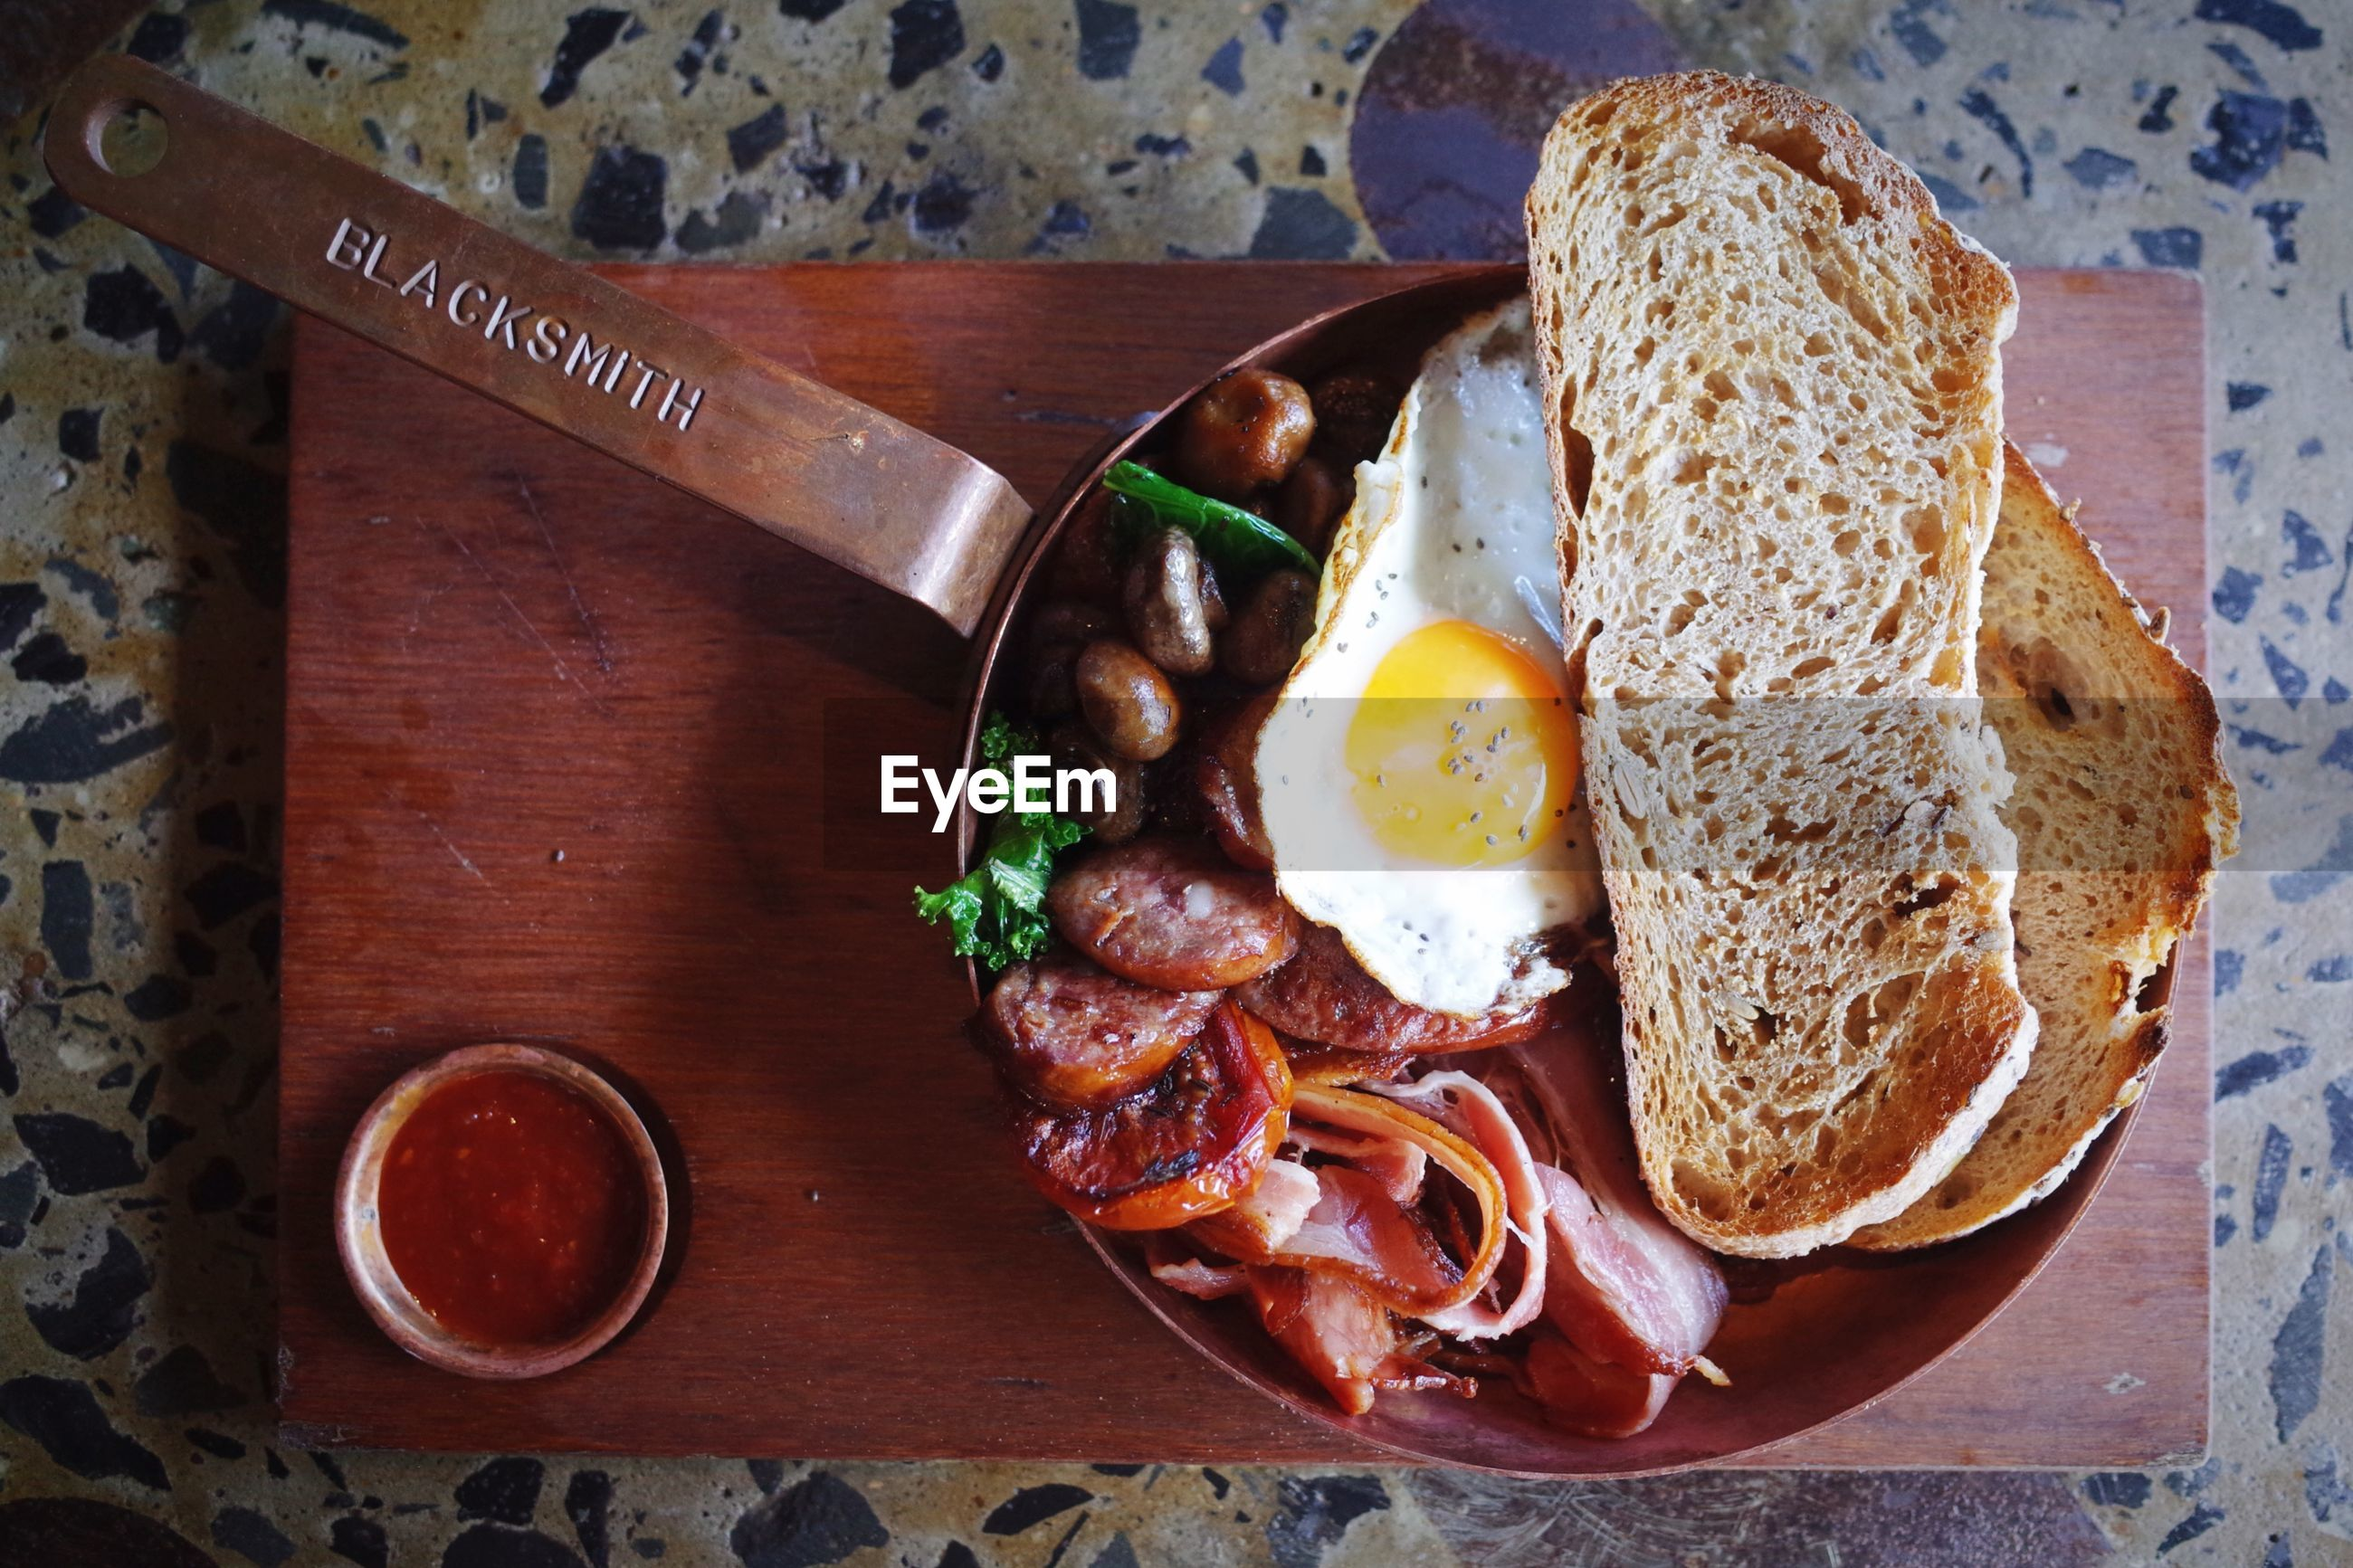 food and drink, food, freshness, still life, ready-to-eat, indoors, table, healthy eating, plate, serving size, high angle view, bread, indulgence, close-up, meal, drink, breakfast, refreshment, temptation